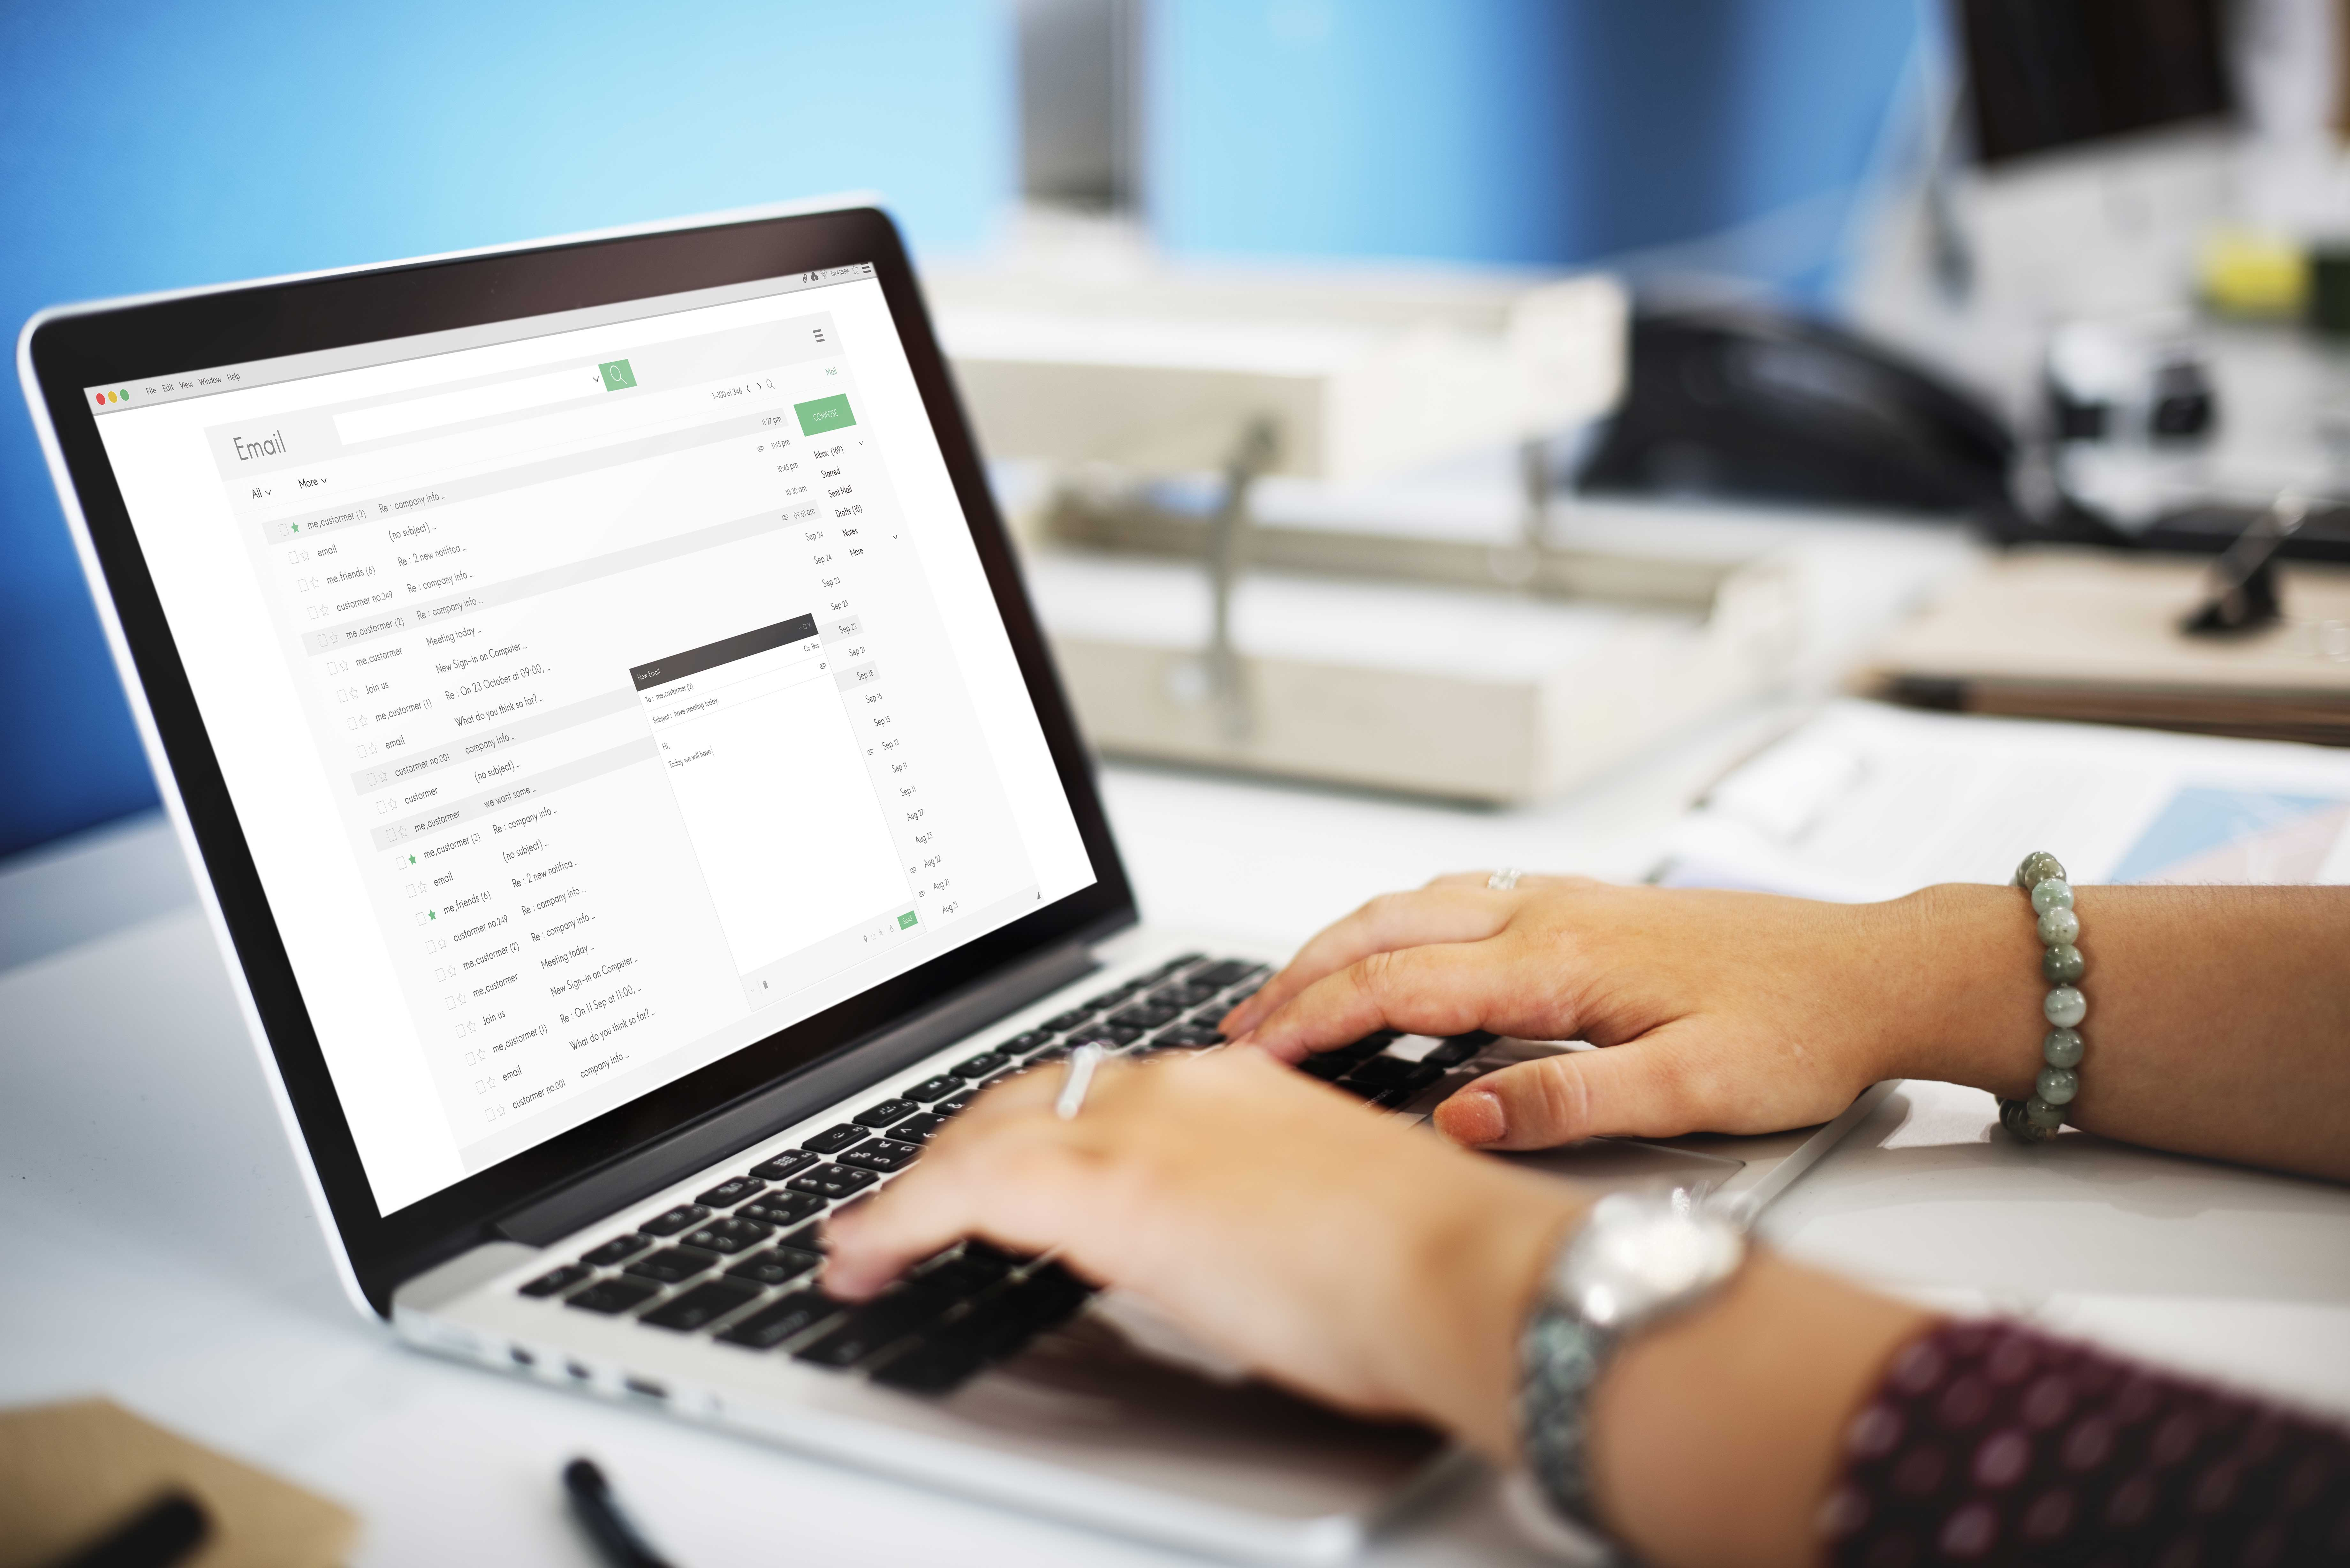 Best Practices with Email Policies